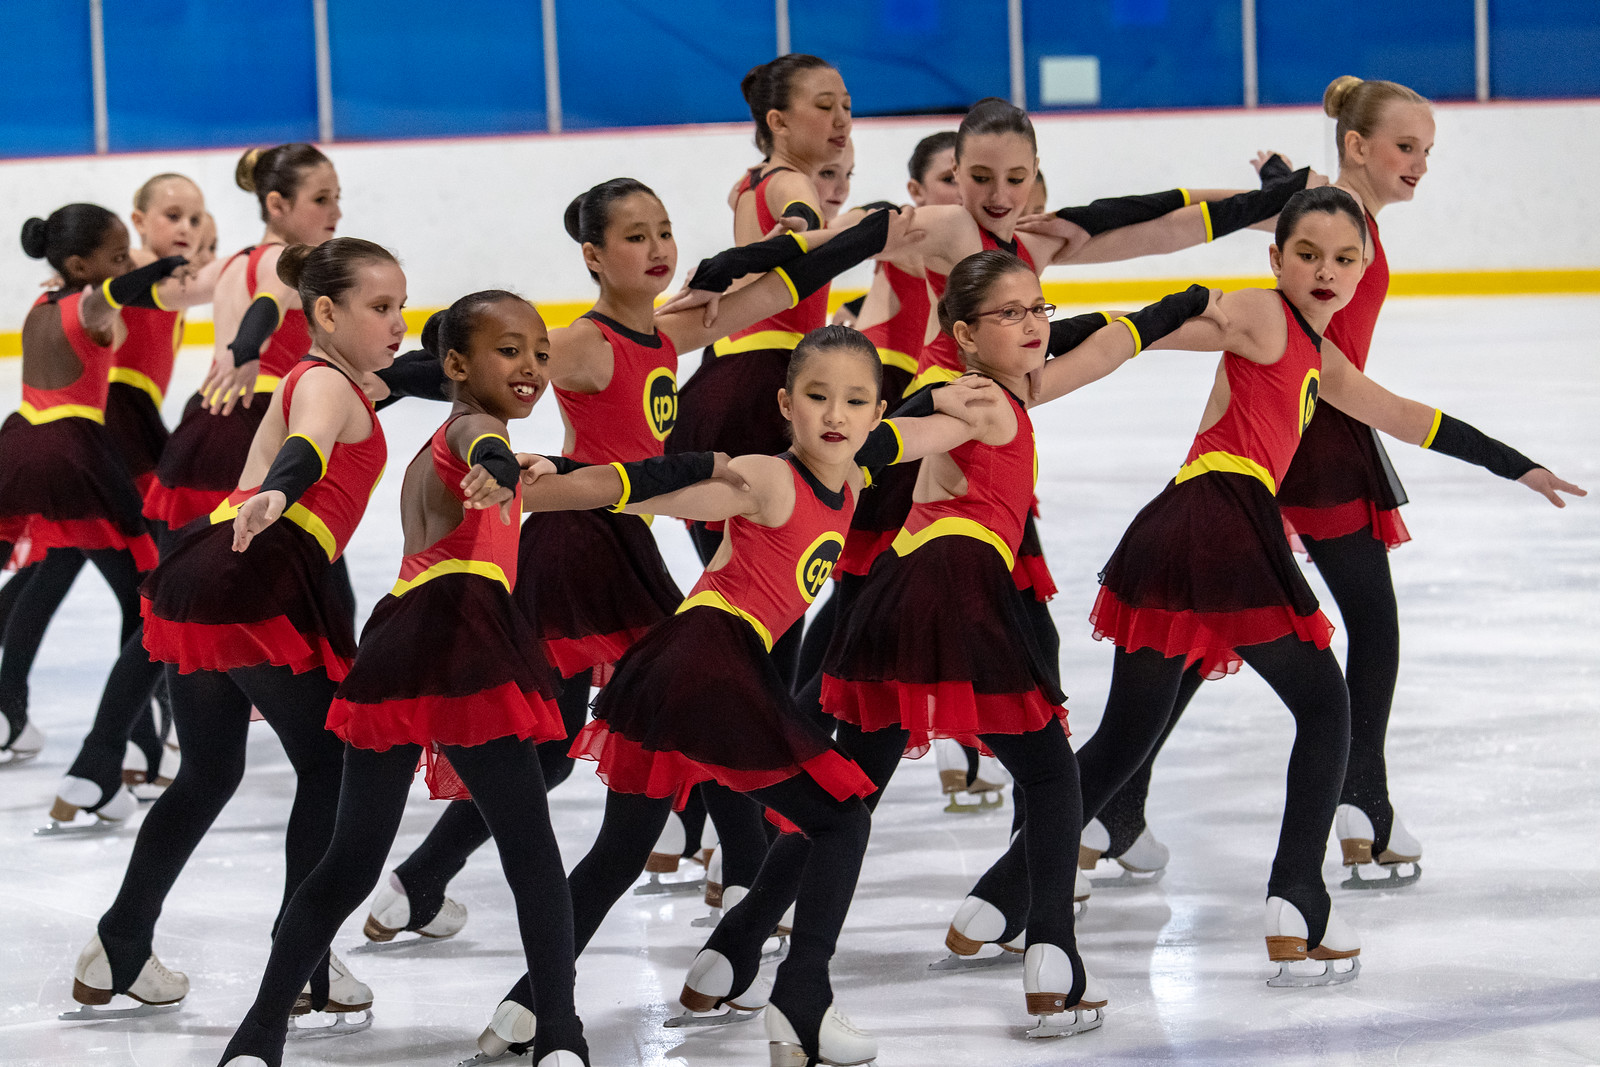 The 2018-19 Central Park Ice Preliminary Line won silver at the 2019 SCNY Synchro Invitational, and bronze at the 2018 Terry Conners Synchro Open and 2019 Colonial Classic.